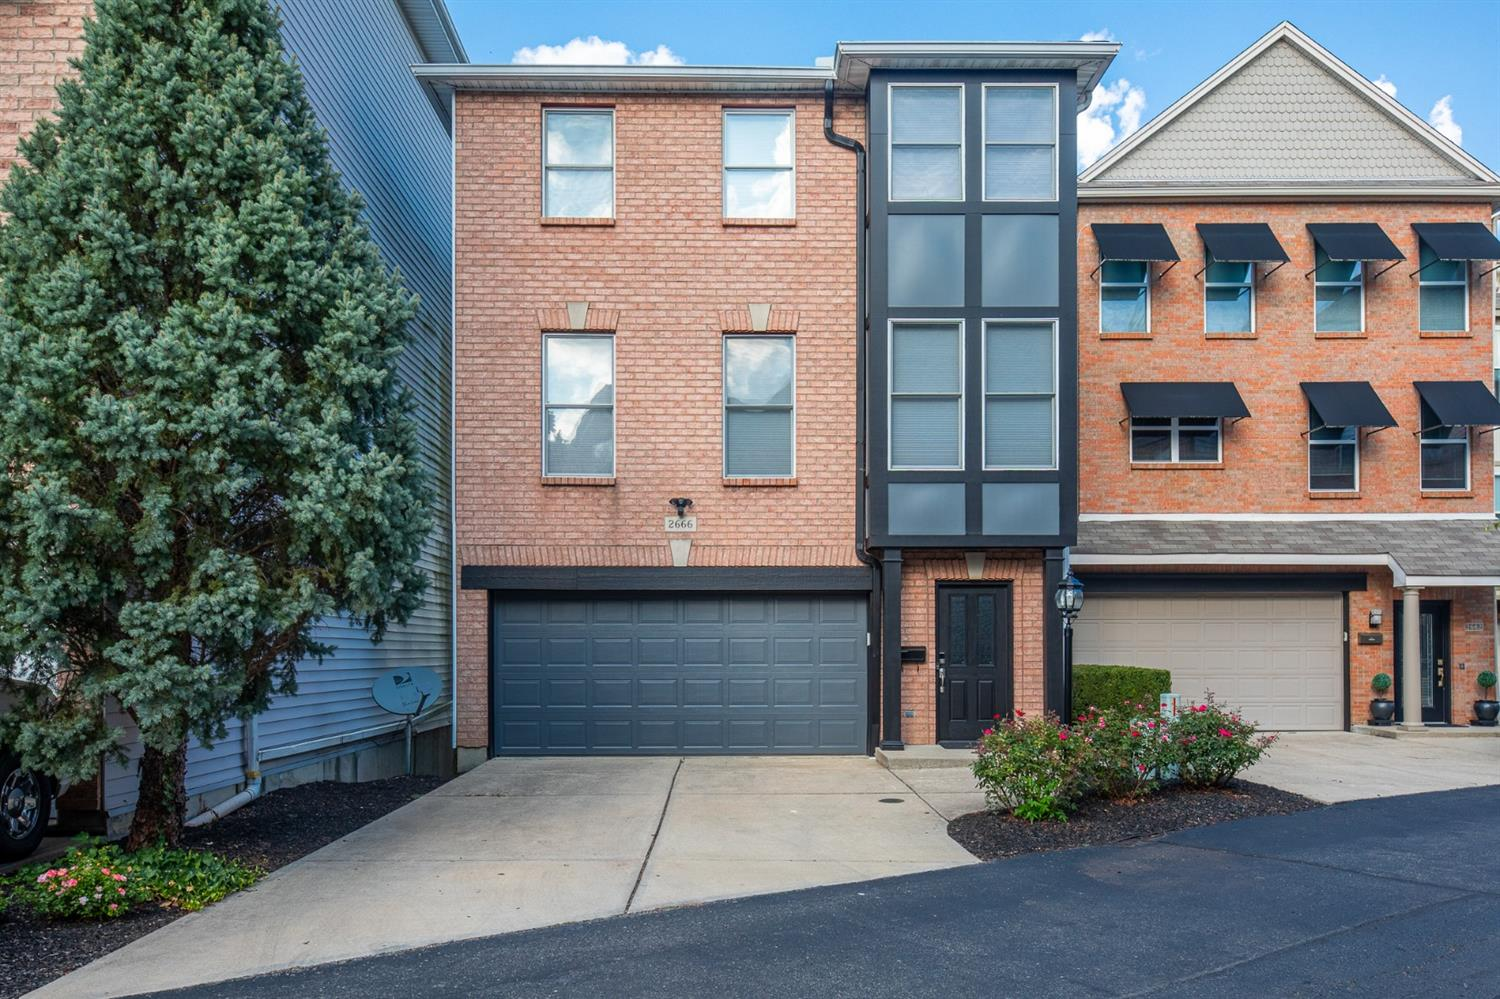 2666 Morrow Place, Cincinnati, Ohio 45204, 3 Bedrooms Bedrooms, 7 Rooms Rooms,2 BathroomsBathrooms,Single Family Residence,For Sale,Morrow,1720139